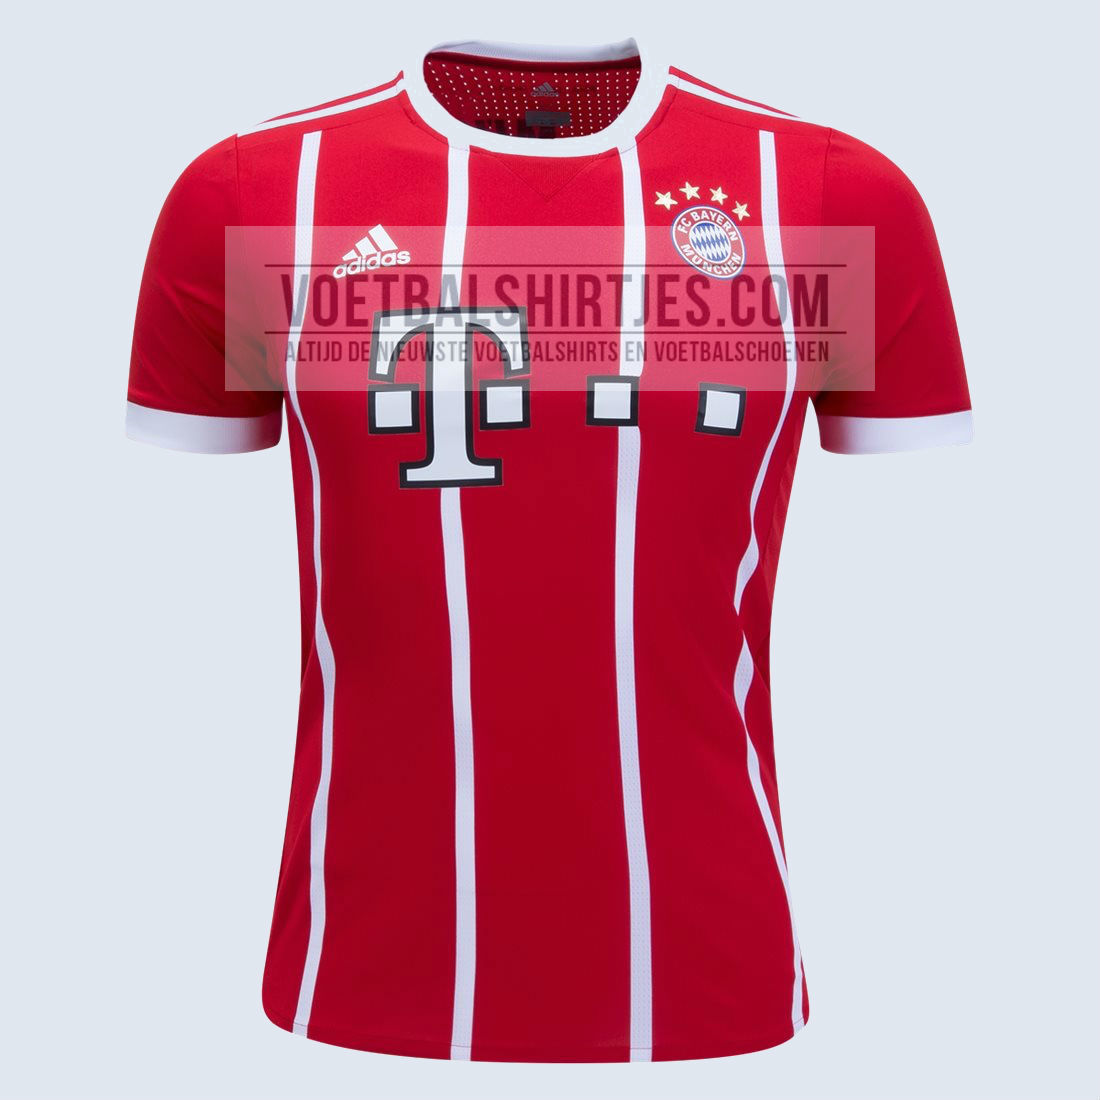 bayern m nchen shirt 2018 bayern thuisshirt 2017 2018 bayern trikot. Black Bedroom Furniture Sets. Home Design Ideas